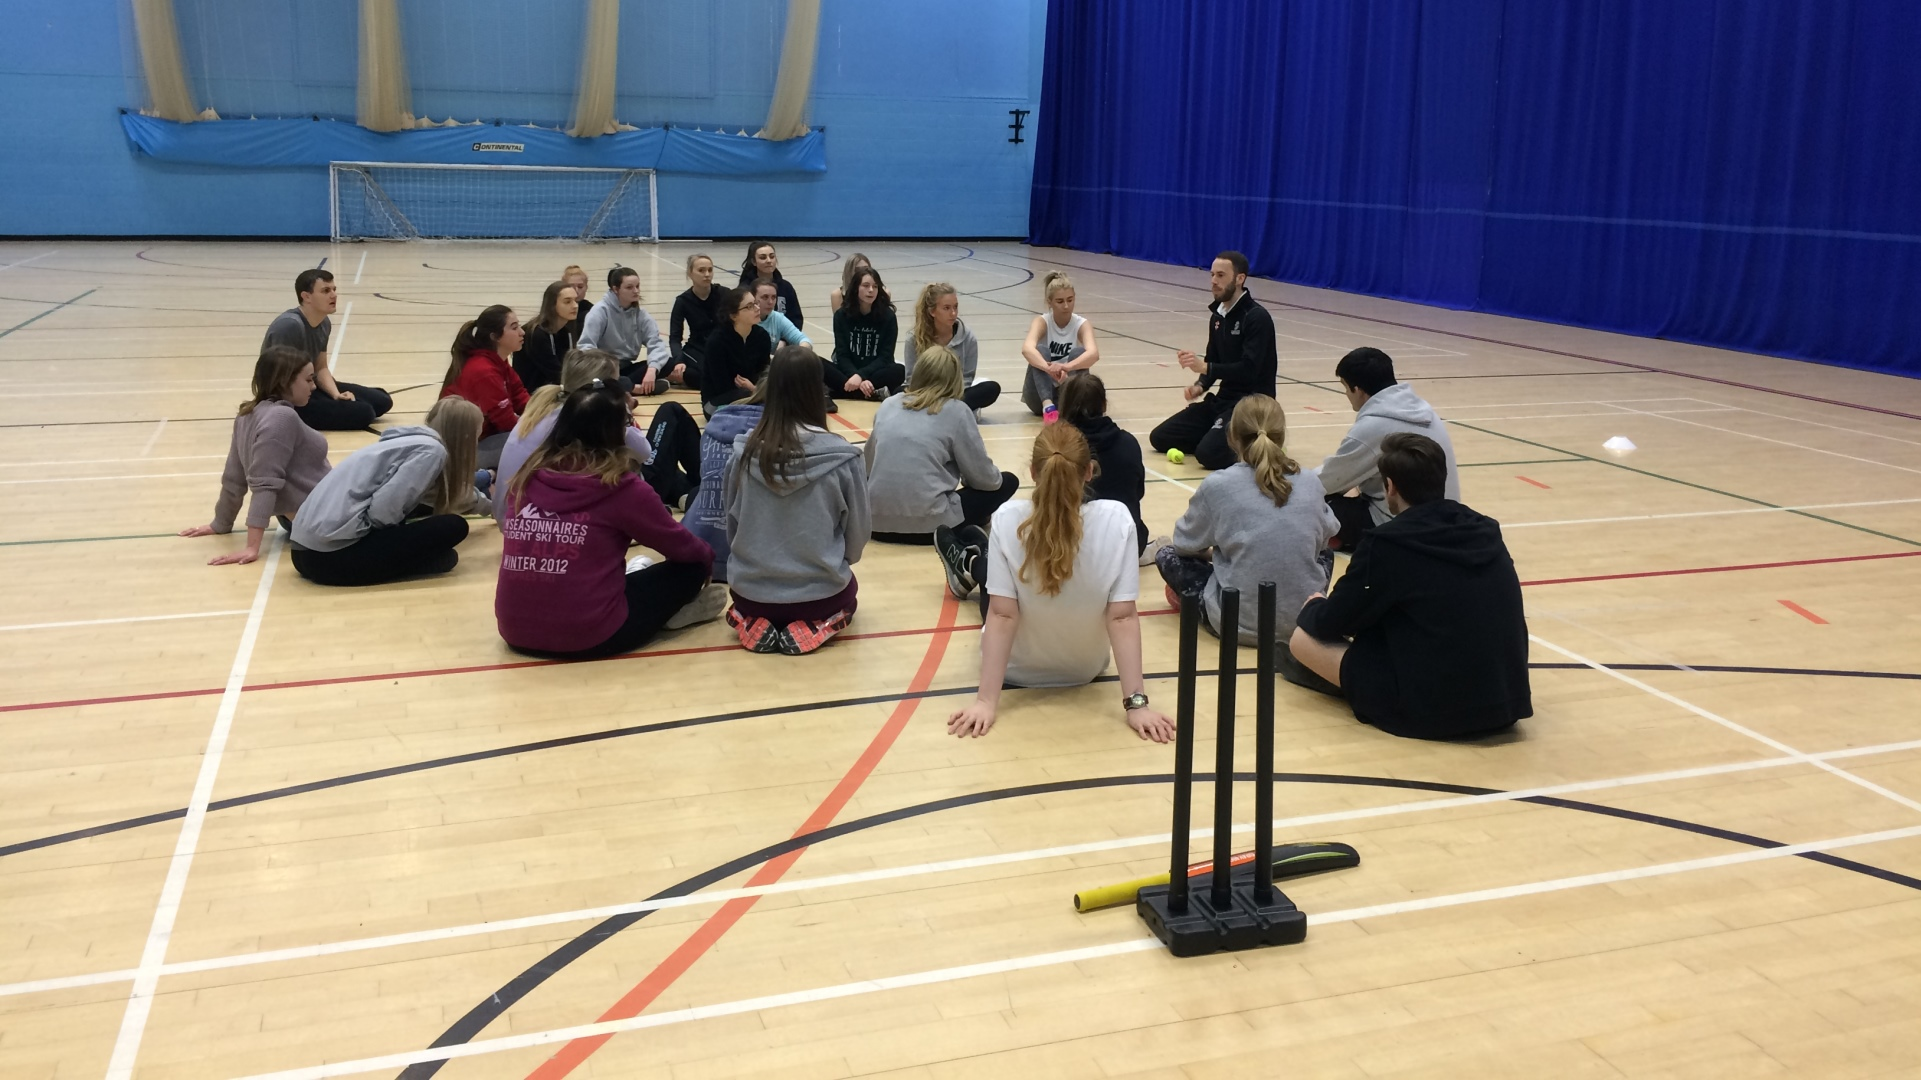 Trainee teachers get first taste of cricket coaching